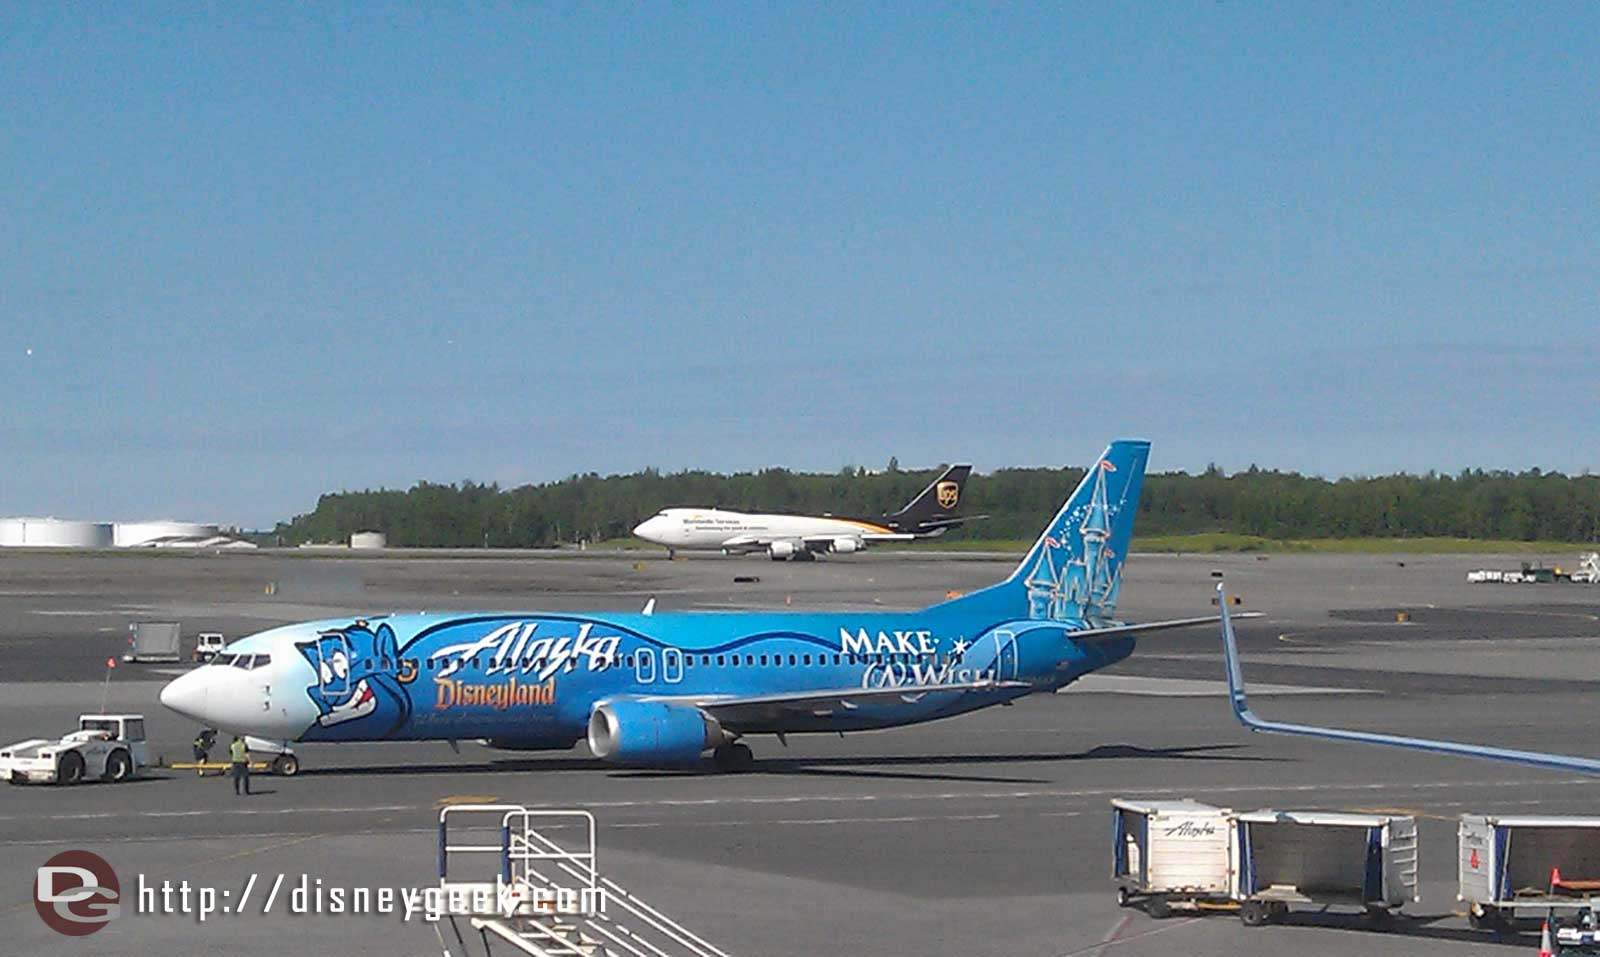 A better picture of the Alaska air Disneyland plane.